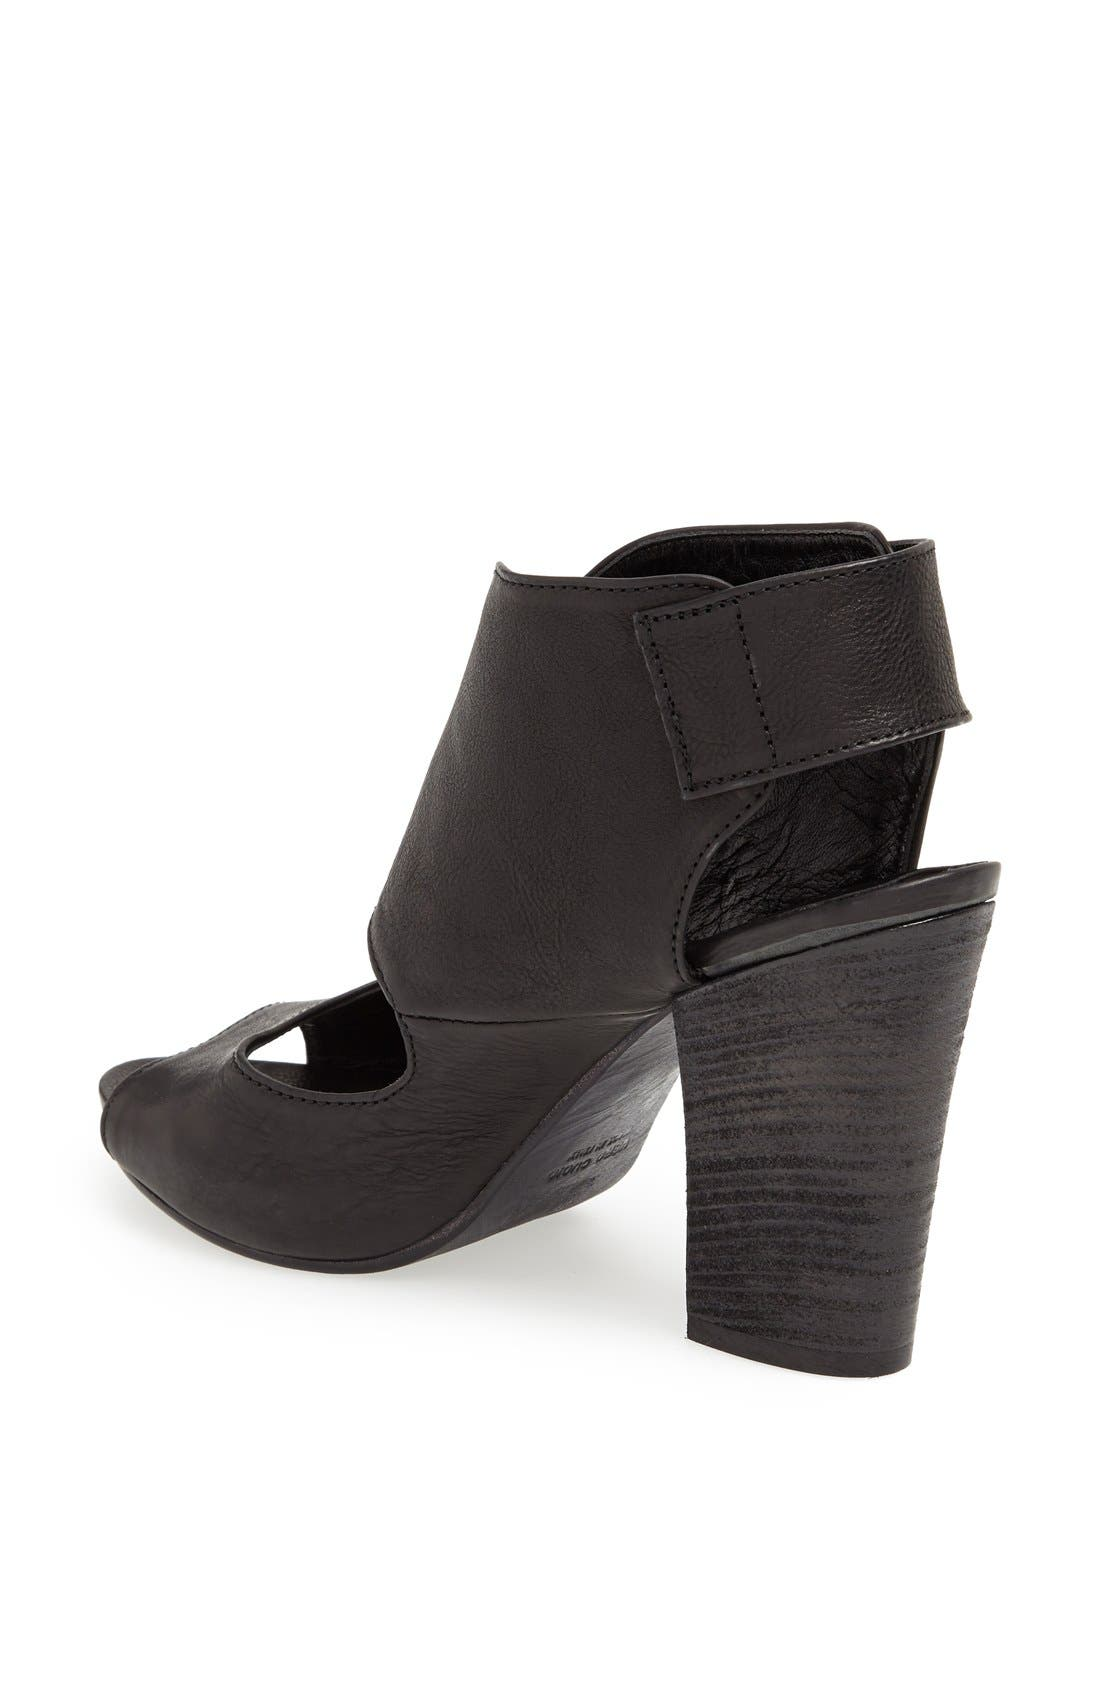 Alternate Image 2  - Latitude Femme Stacked Heel Leather Sandal